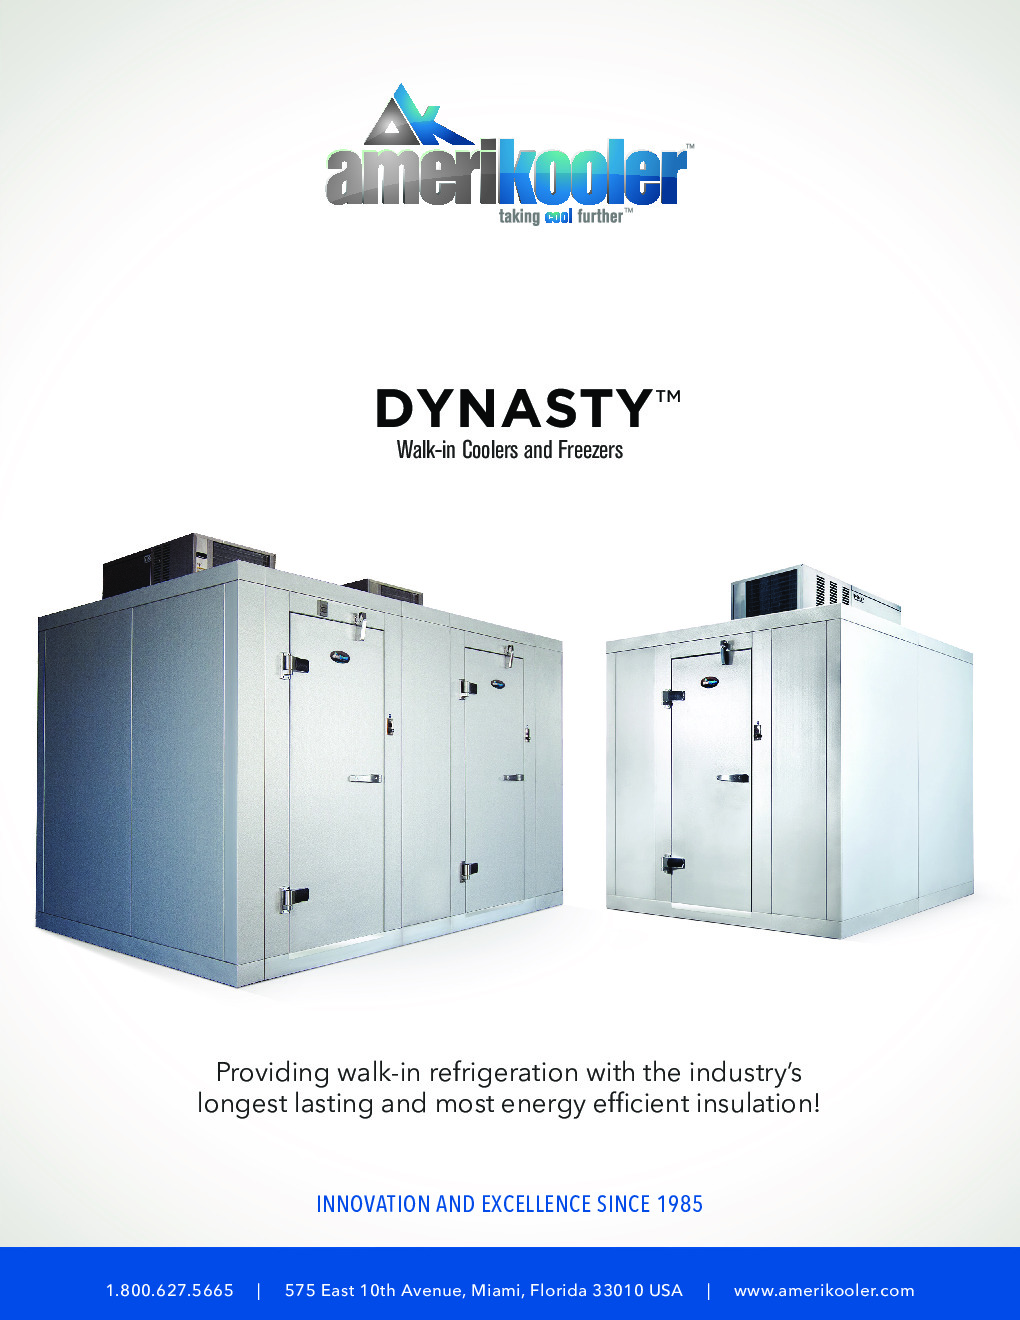 AmeriKooler DW081677F-4/12-RM 8' X 16' Walk-In Cooler, 12' L Cooler with Floor and 4' L Freezer, Remote